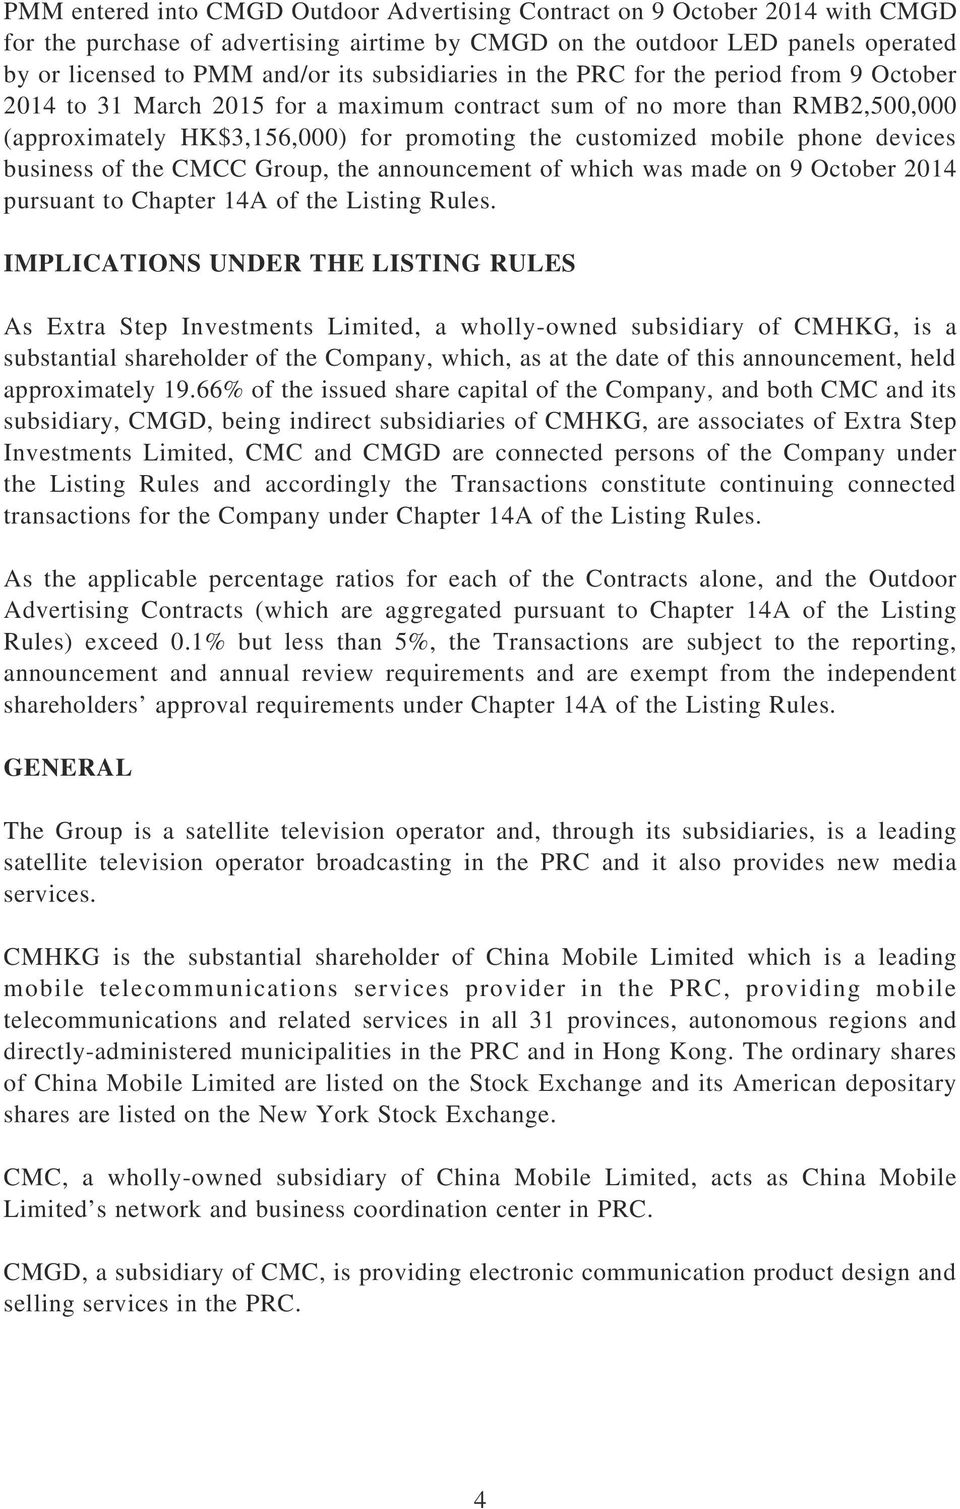 phone devices business of the CMCC Group, the announcement of which was made on 9 October 2014 pursuant to Chapter 14A of the Listing Rules.